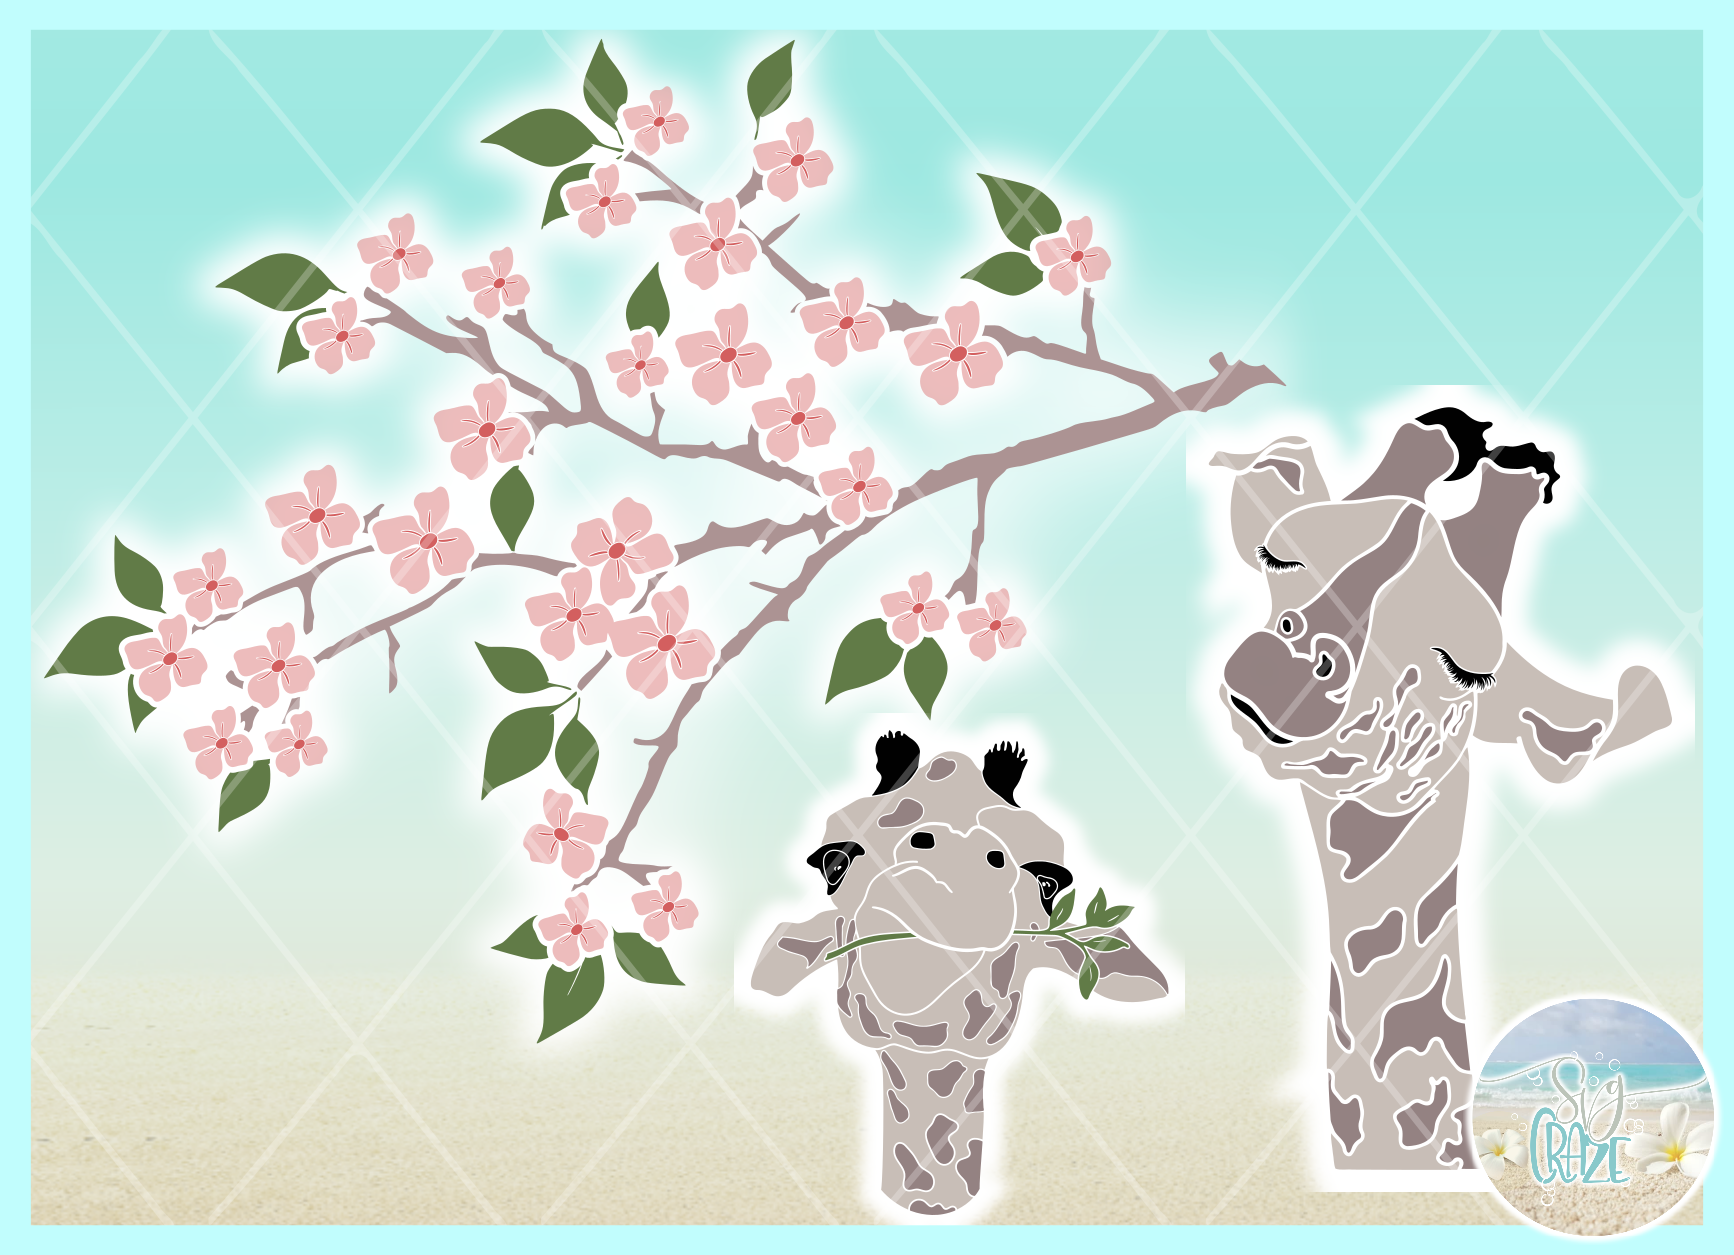 Cute Giraffe Faces with Flowering Tree Limb Svg Dxf Eps Png example image 2